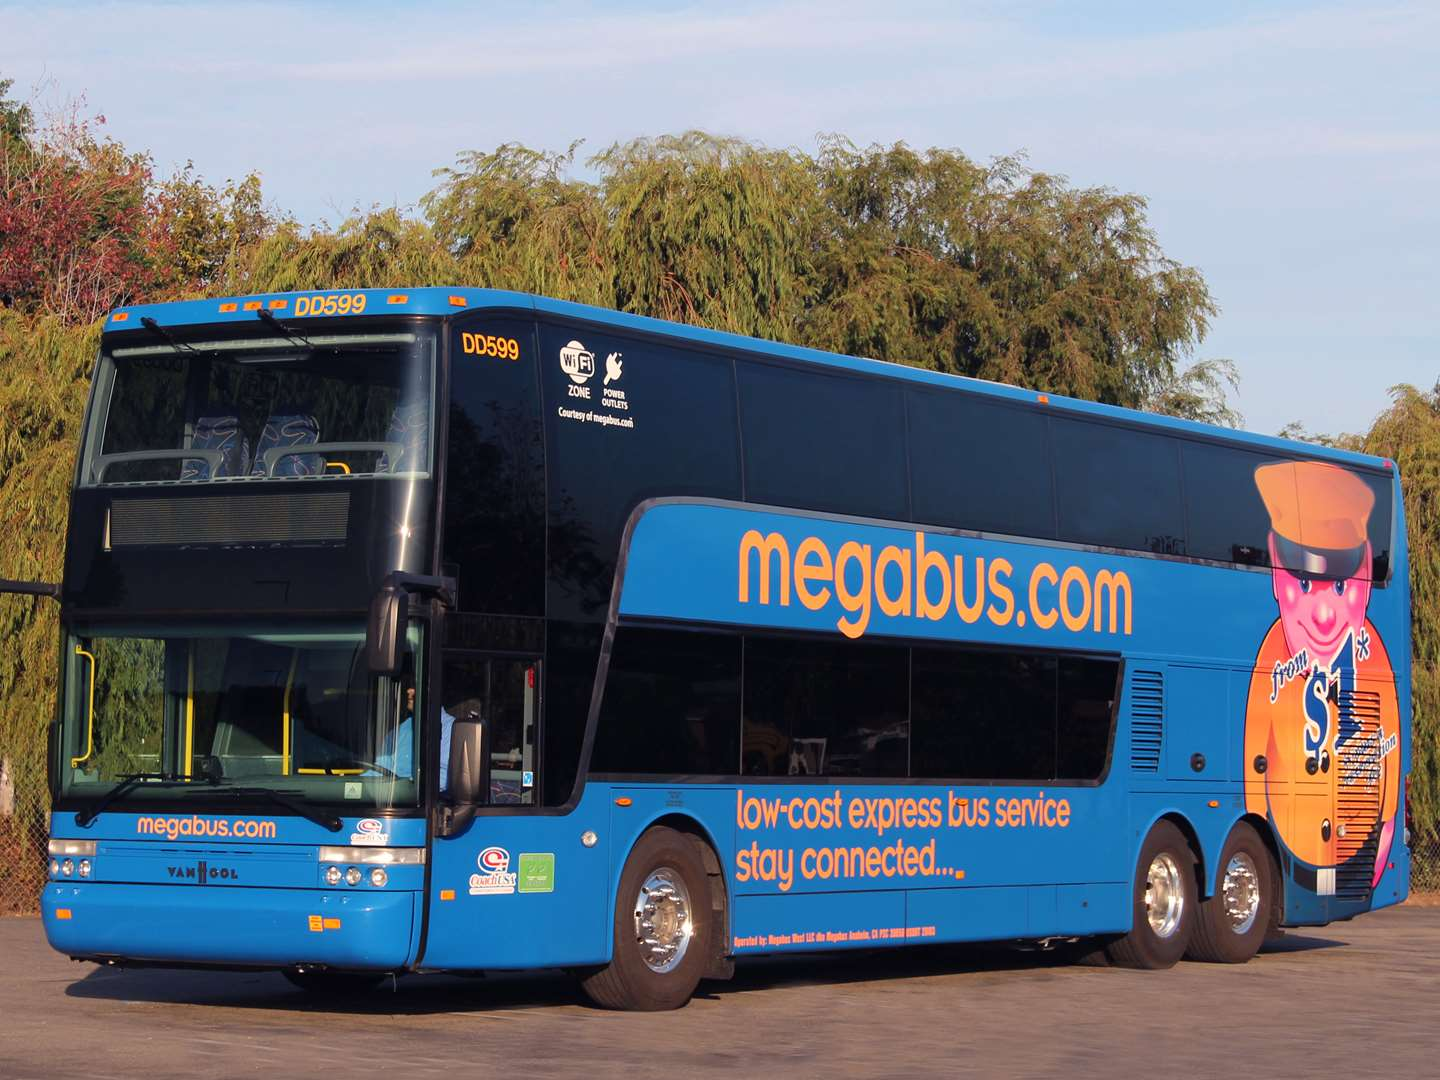 Megabus.com delivers holiday cheer to Houstonians affected by Harvey